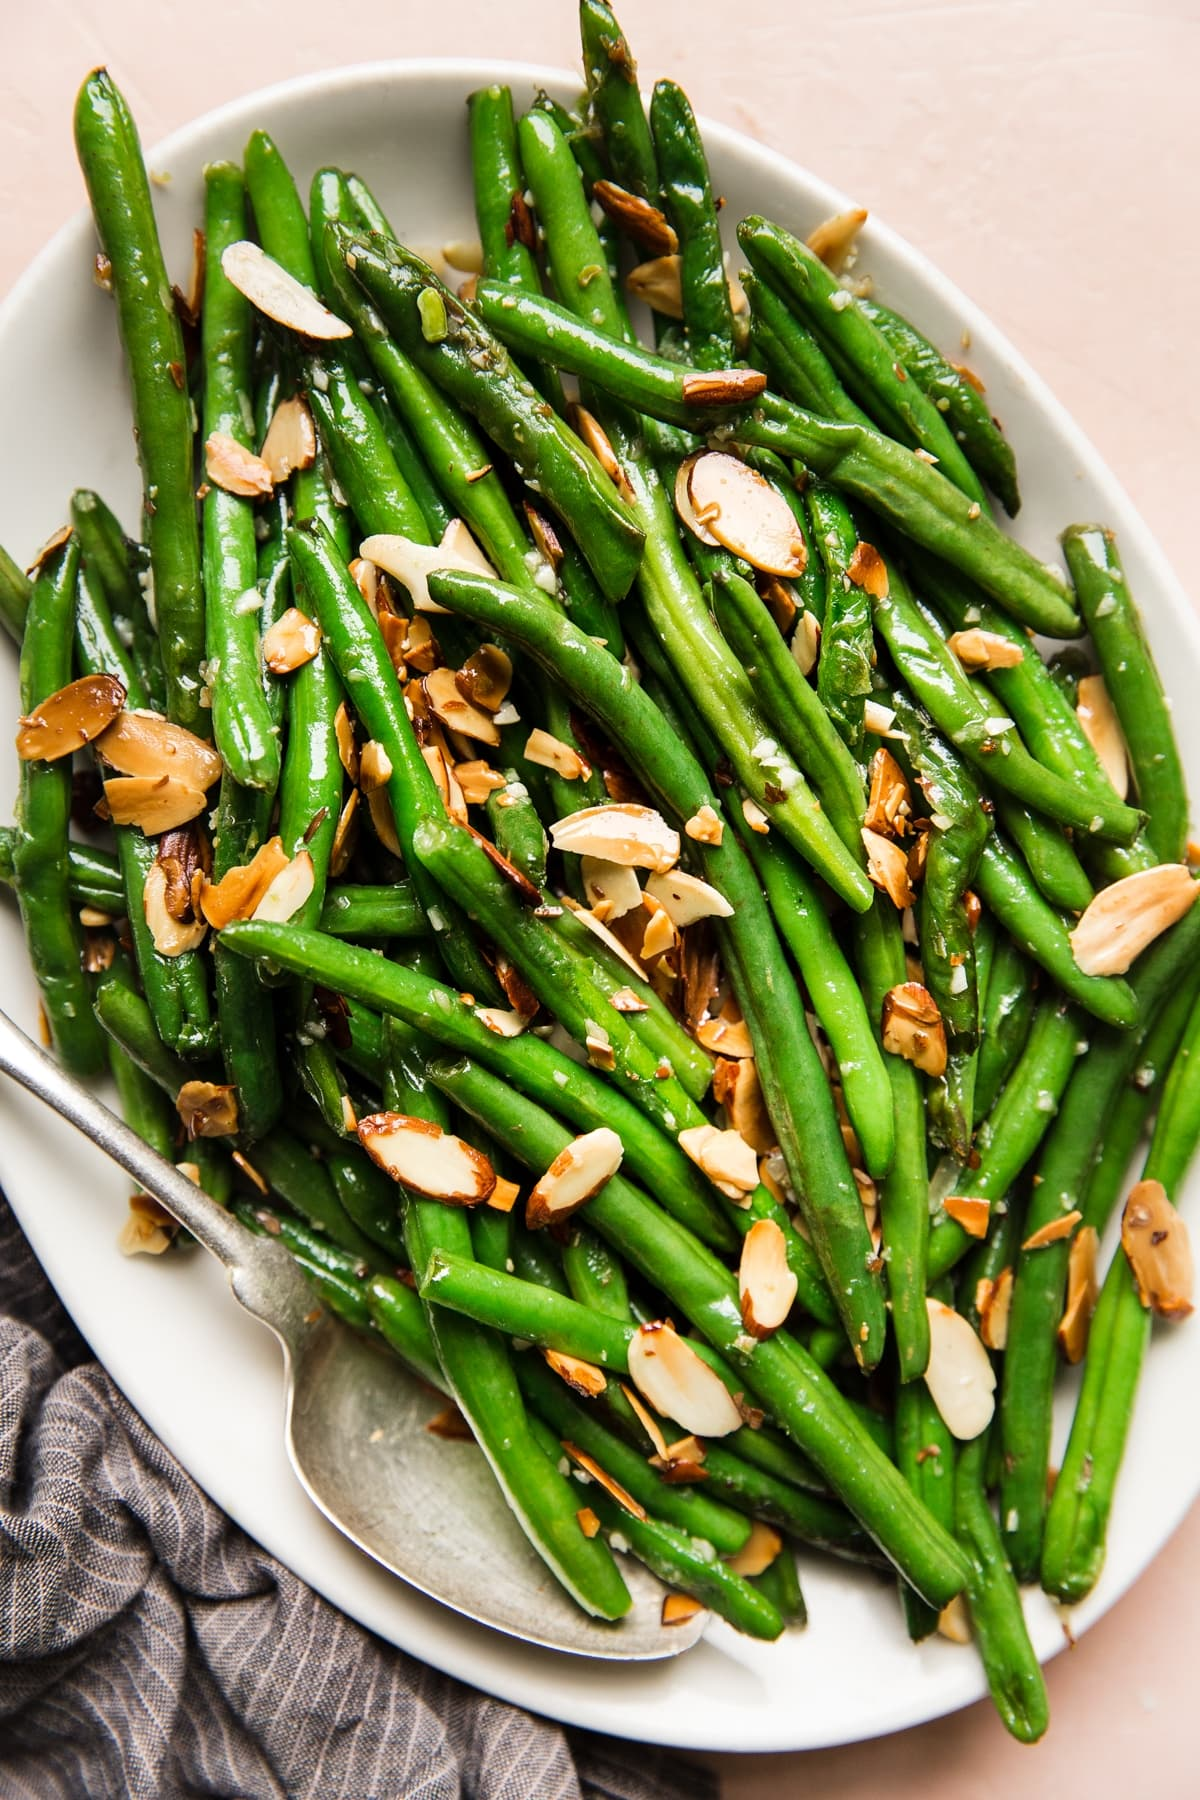 green bean almondine with garlic and toasted almonds on a white platter with a spoon